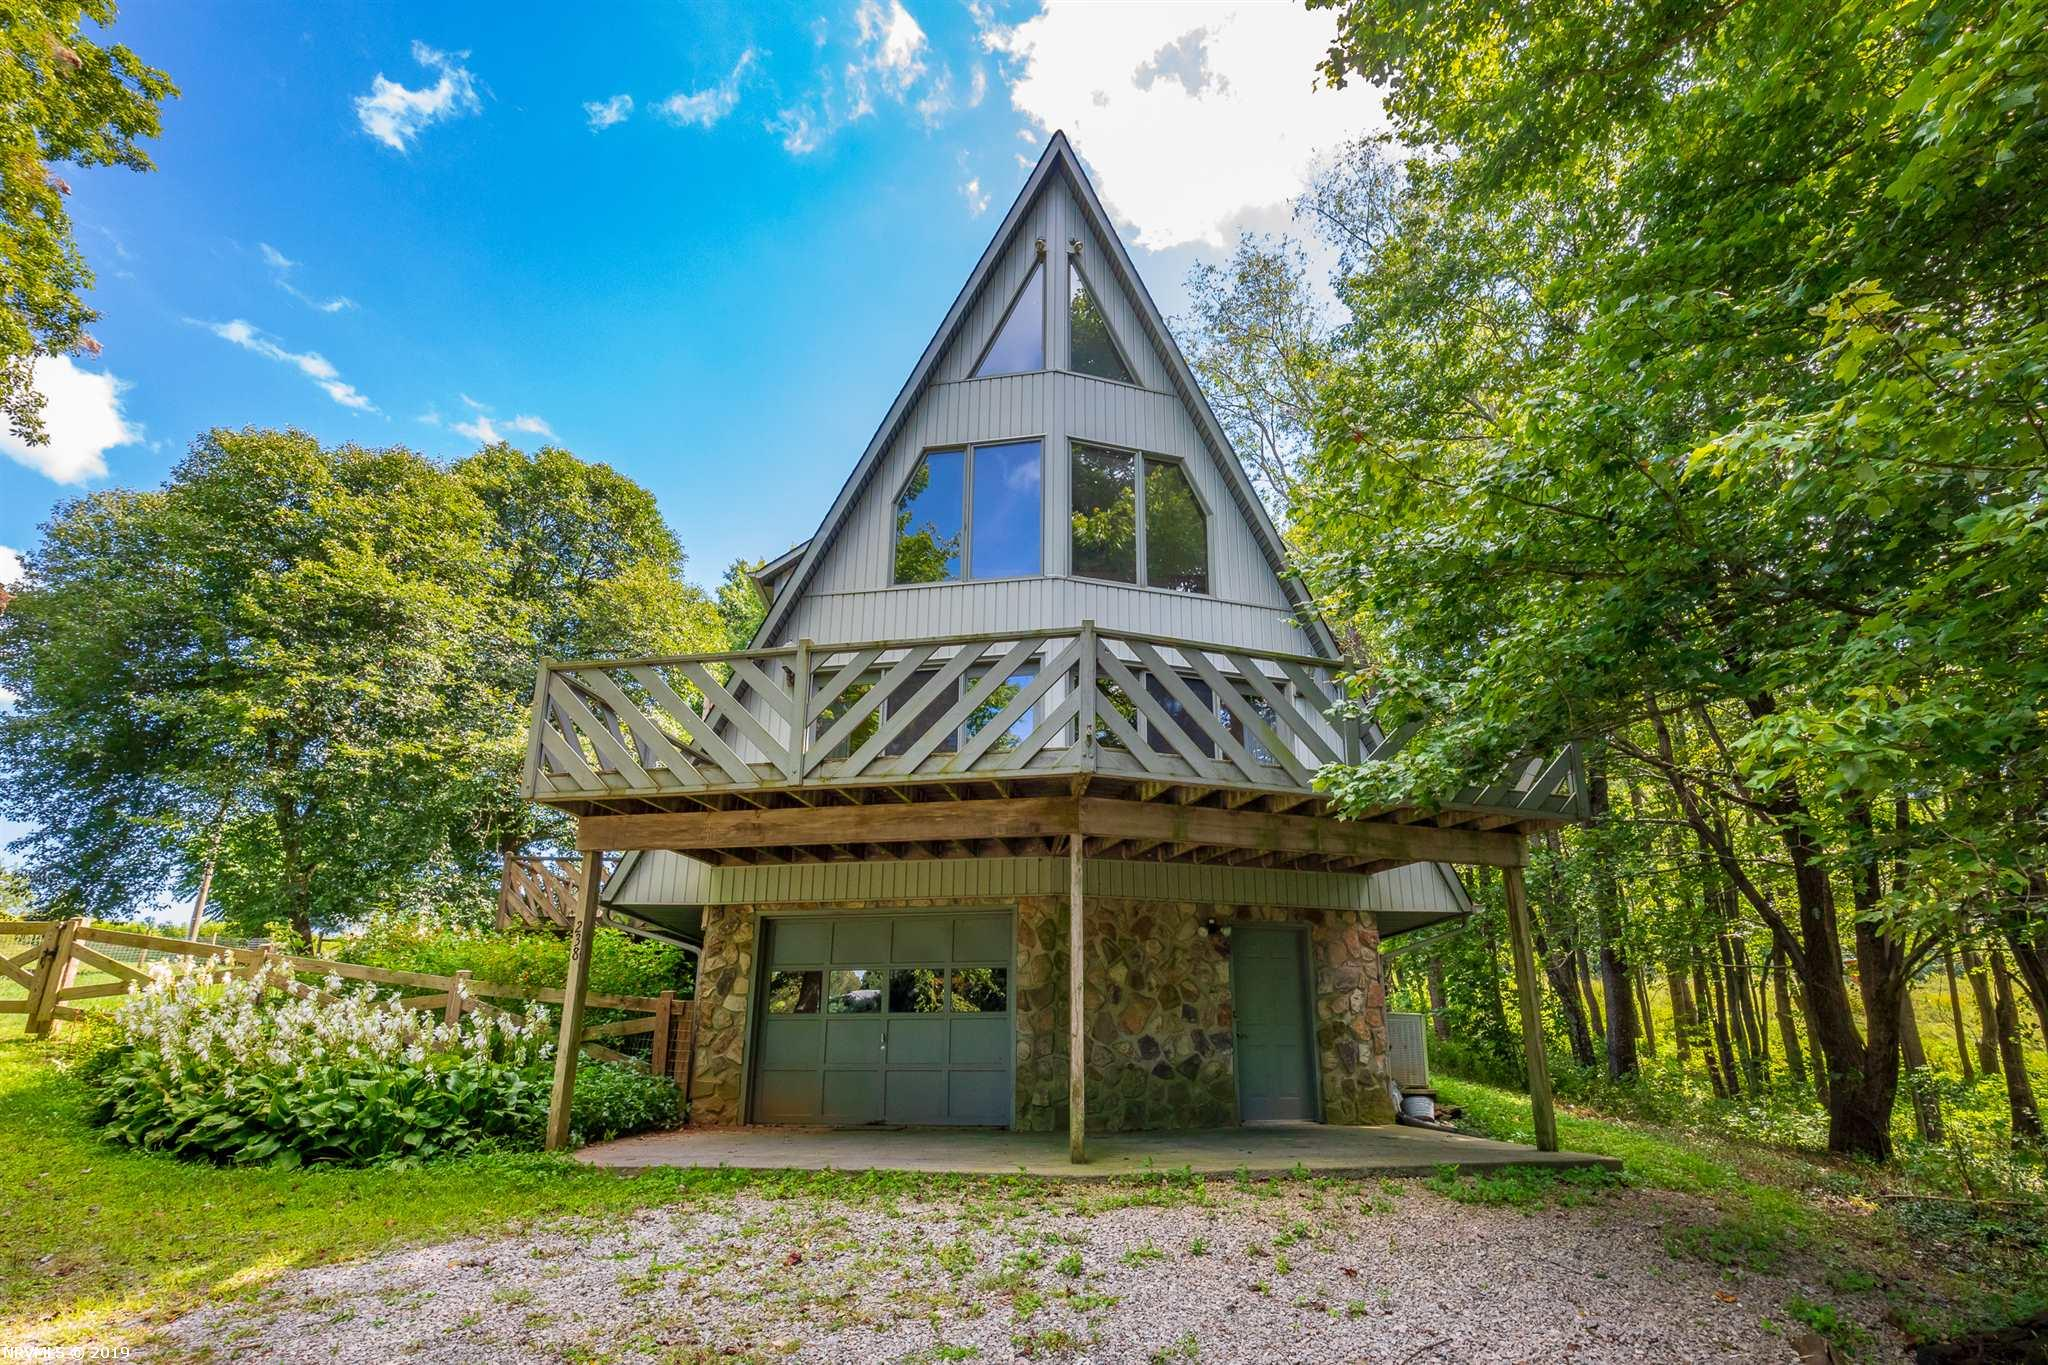 This charming A-Frame house could be your own private paradise! This picturesque property has both beautiful woods and sloping pastures, offering gorgeous views no matter where you are. With a fenced in yard and a gazebo located right in the heart of the property, you won't want to go inside! The house is full of character as well as functionality. With a full finished basement and game room, it offers amenities not often seen in this area. While it feels like a secluded mountain dreamscape, you are actually only five minutes from Rural Retreat and exit 60 on I-81, with quick access to Wytheville, Abingdon, Bristol, and more. Don't miss out on this amazing home!